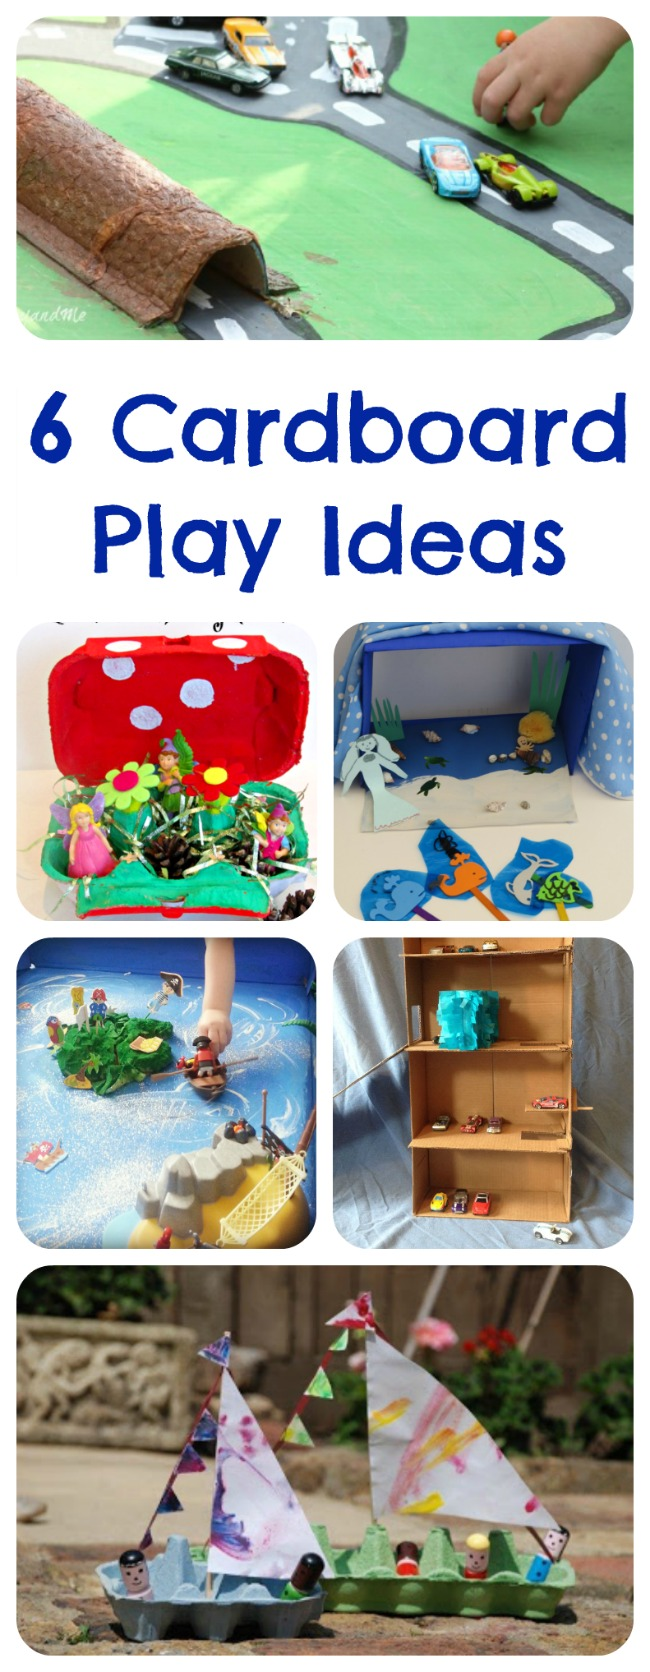 6 Cardboard Play Ideas